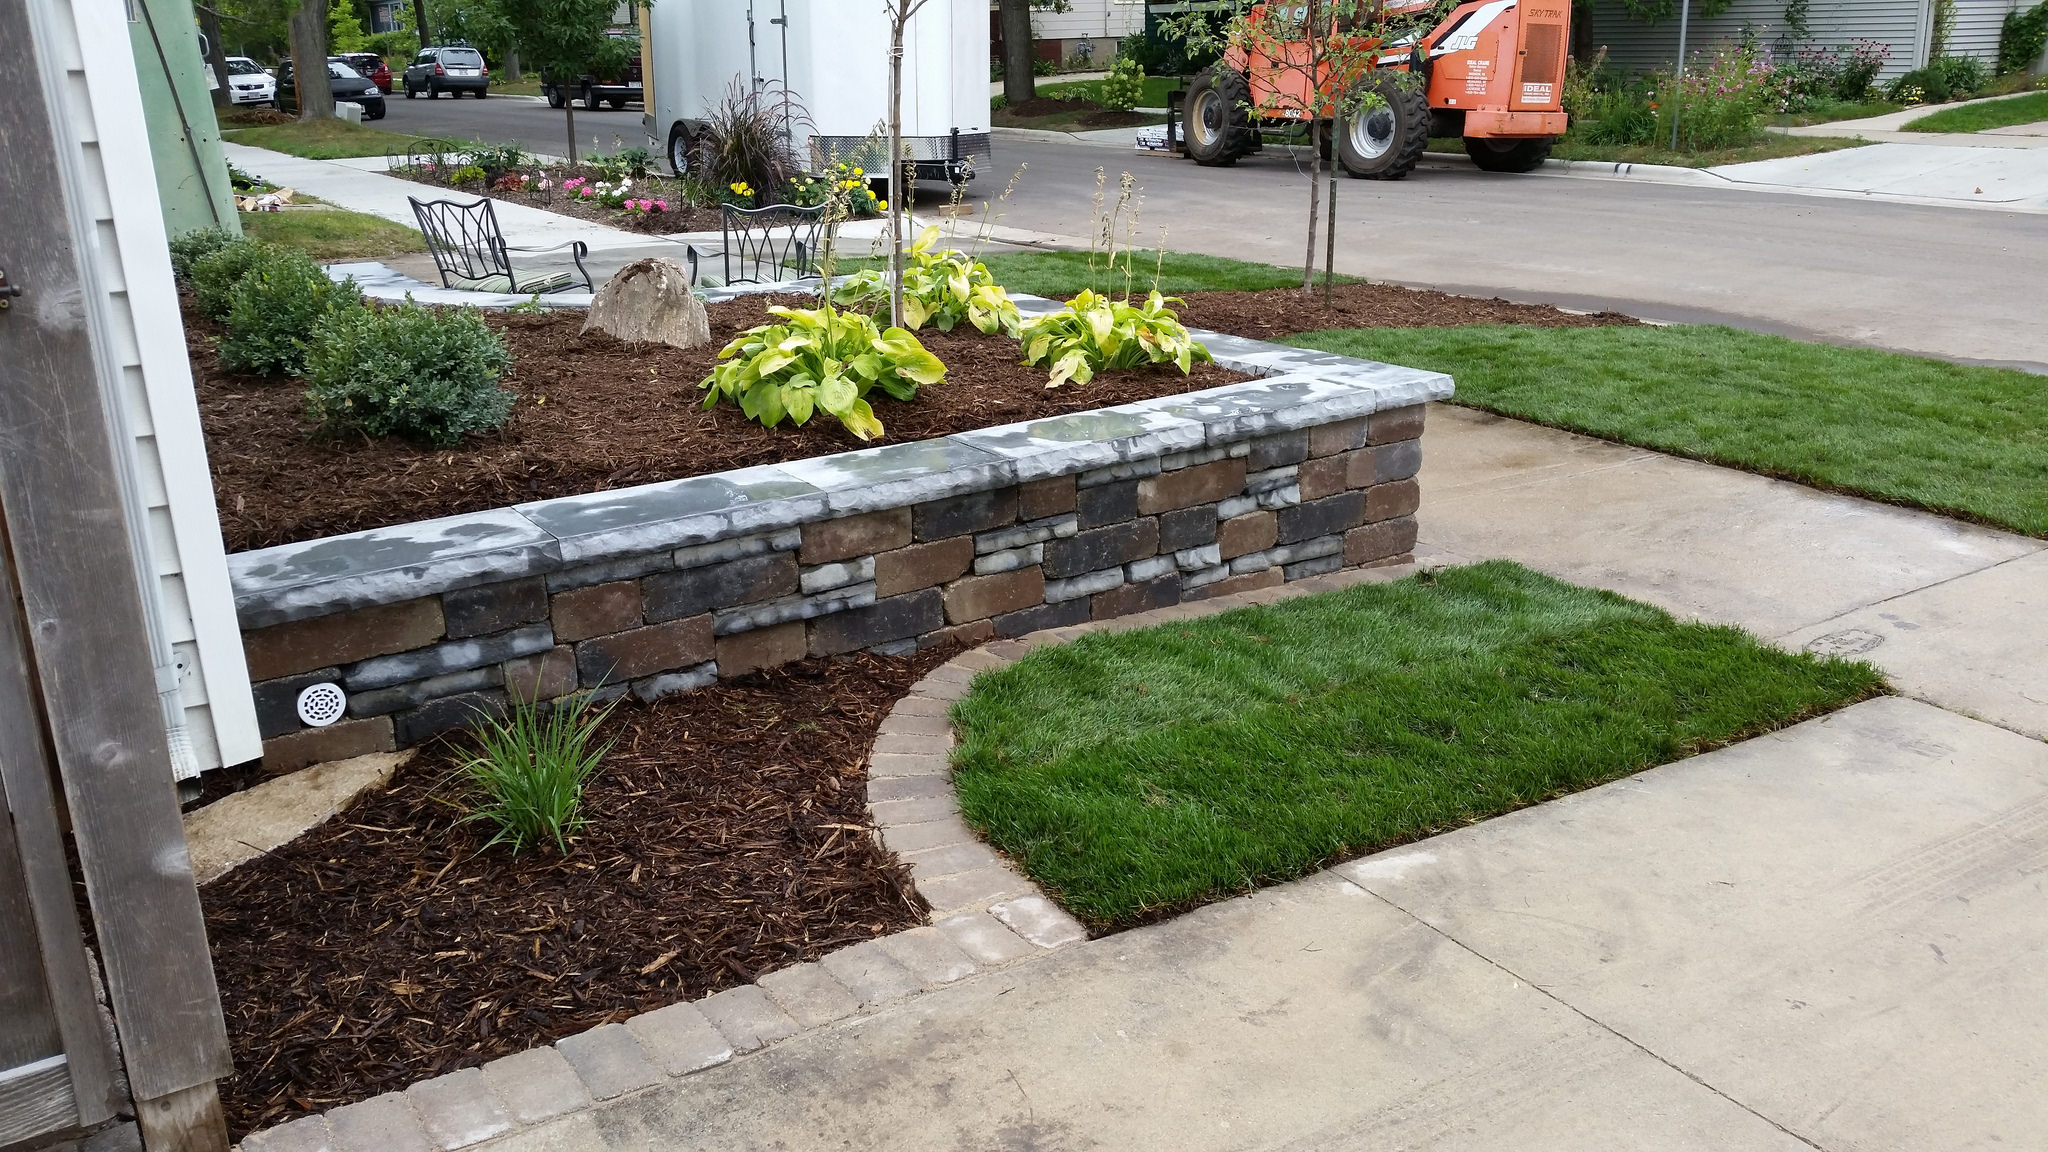 Retaining wall by landscaping company in Madison WI